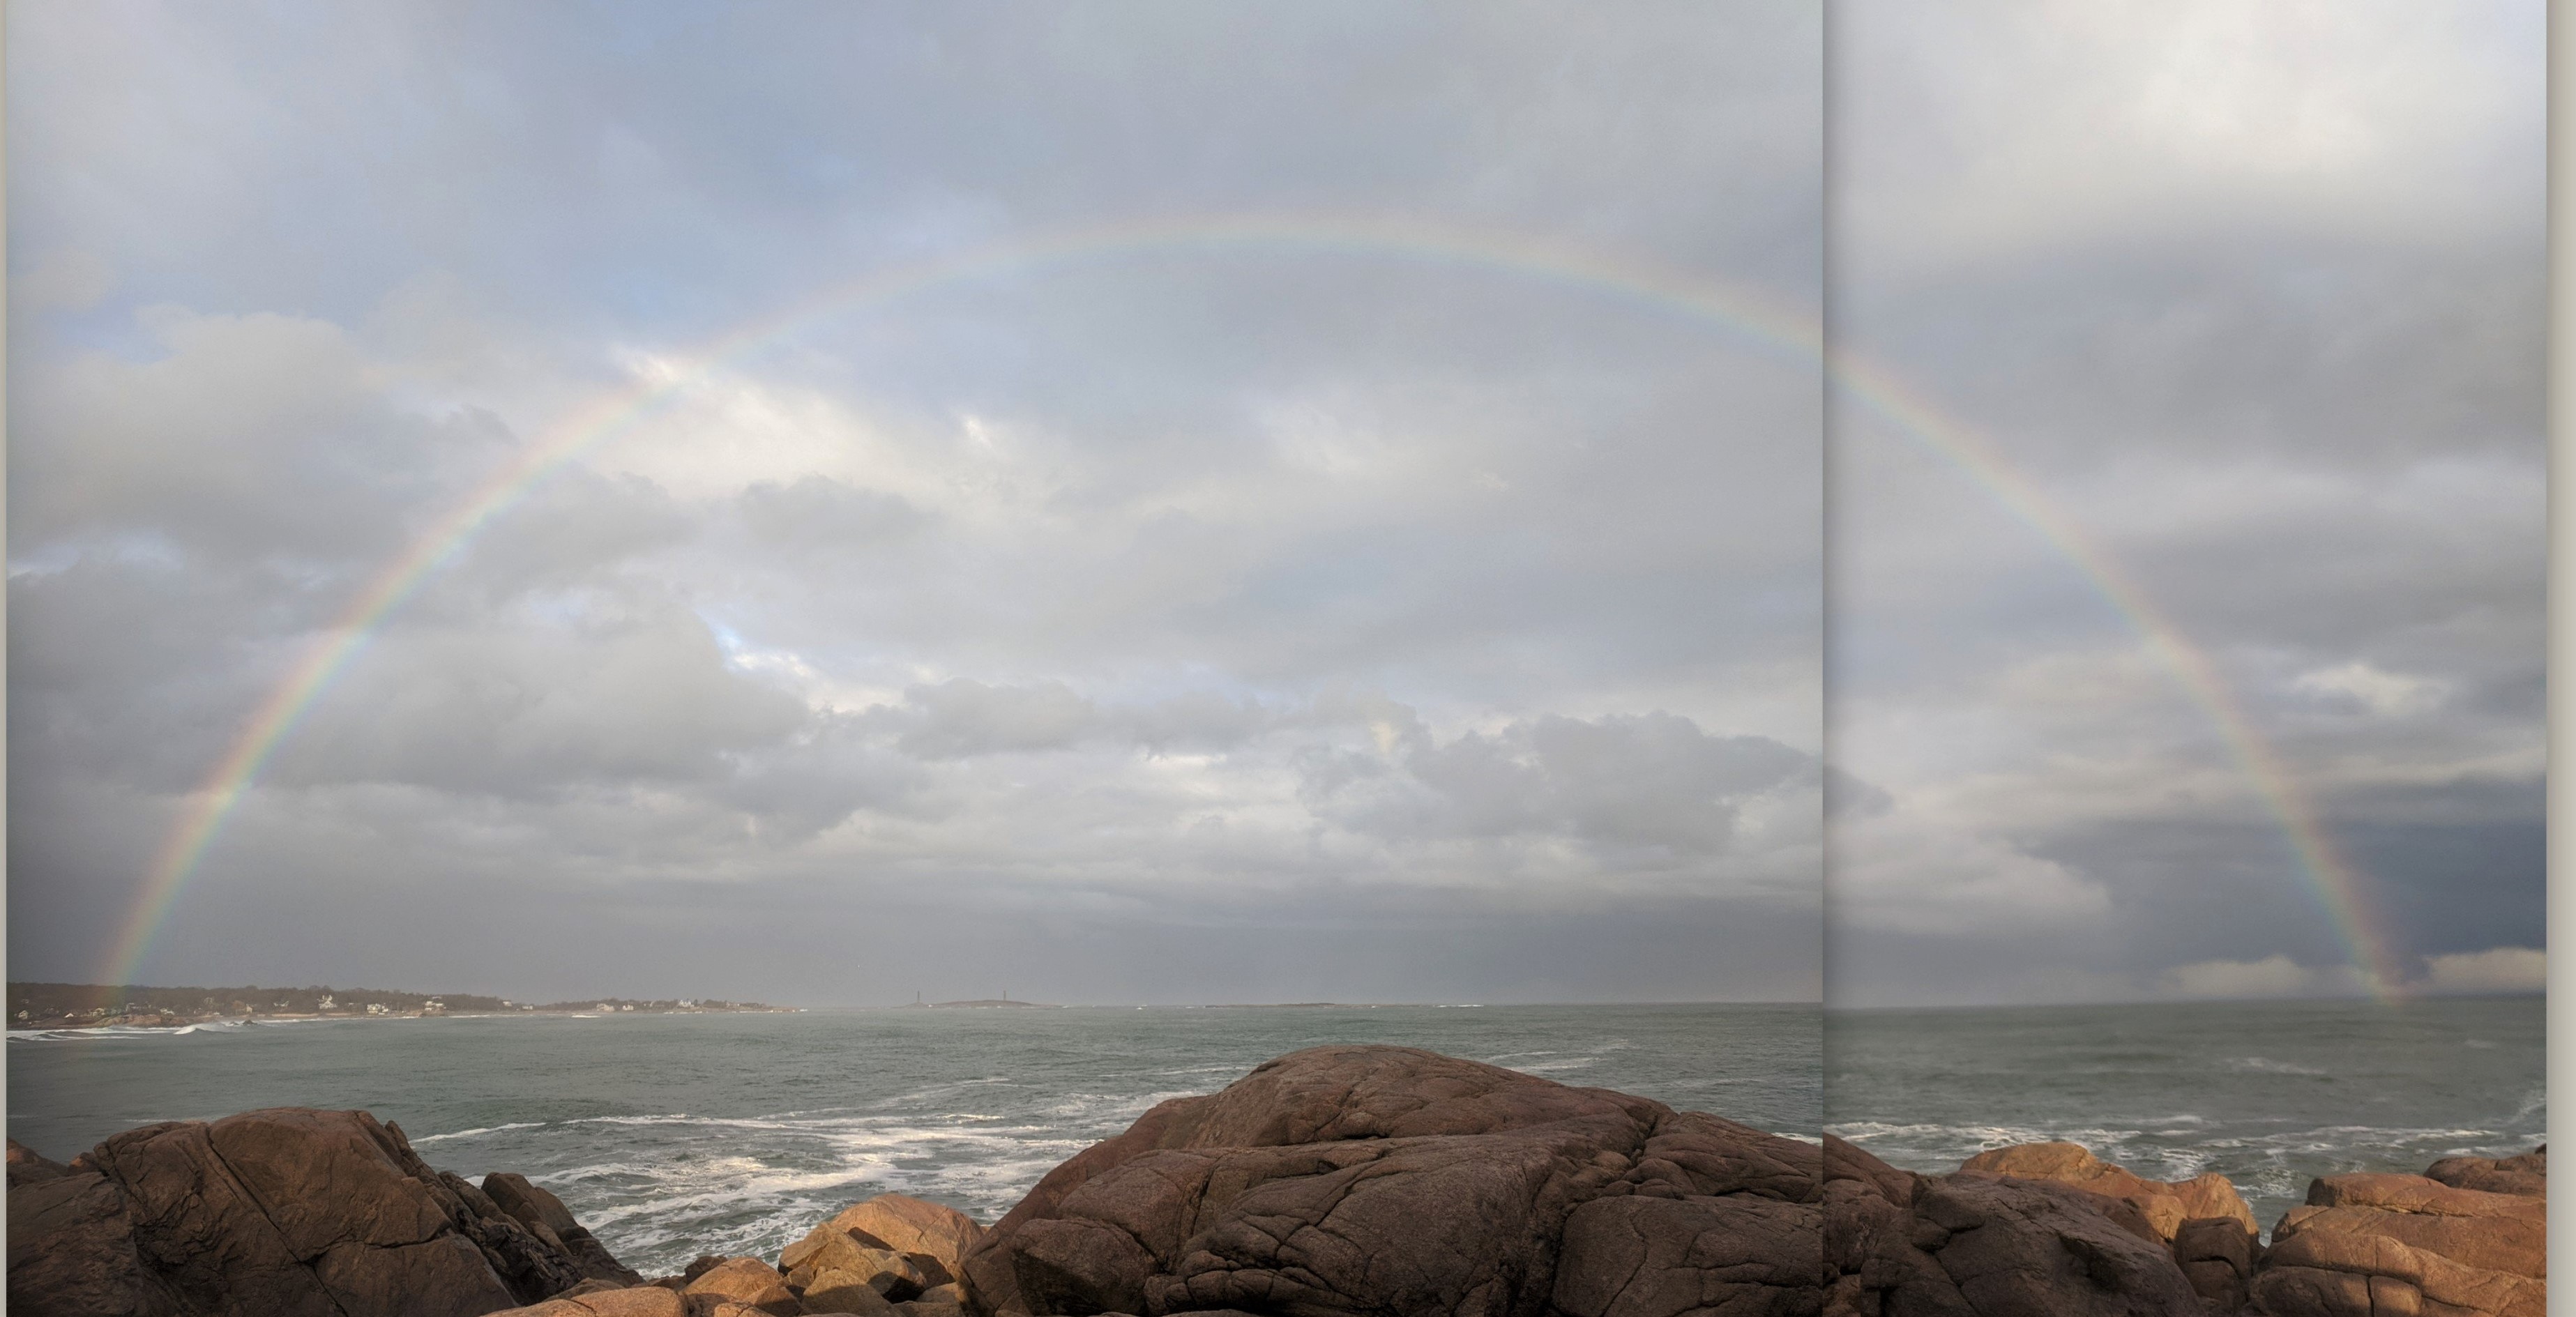 poor pano patch _big rainbow March 13 2020 view from Gloucester Ma near Long Beach Twin Lights in distance